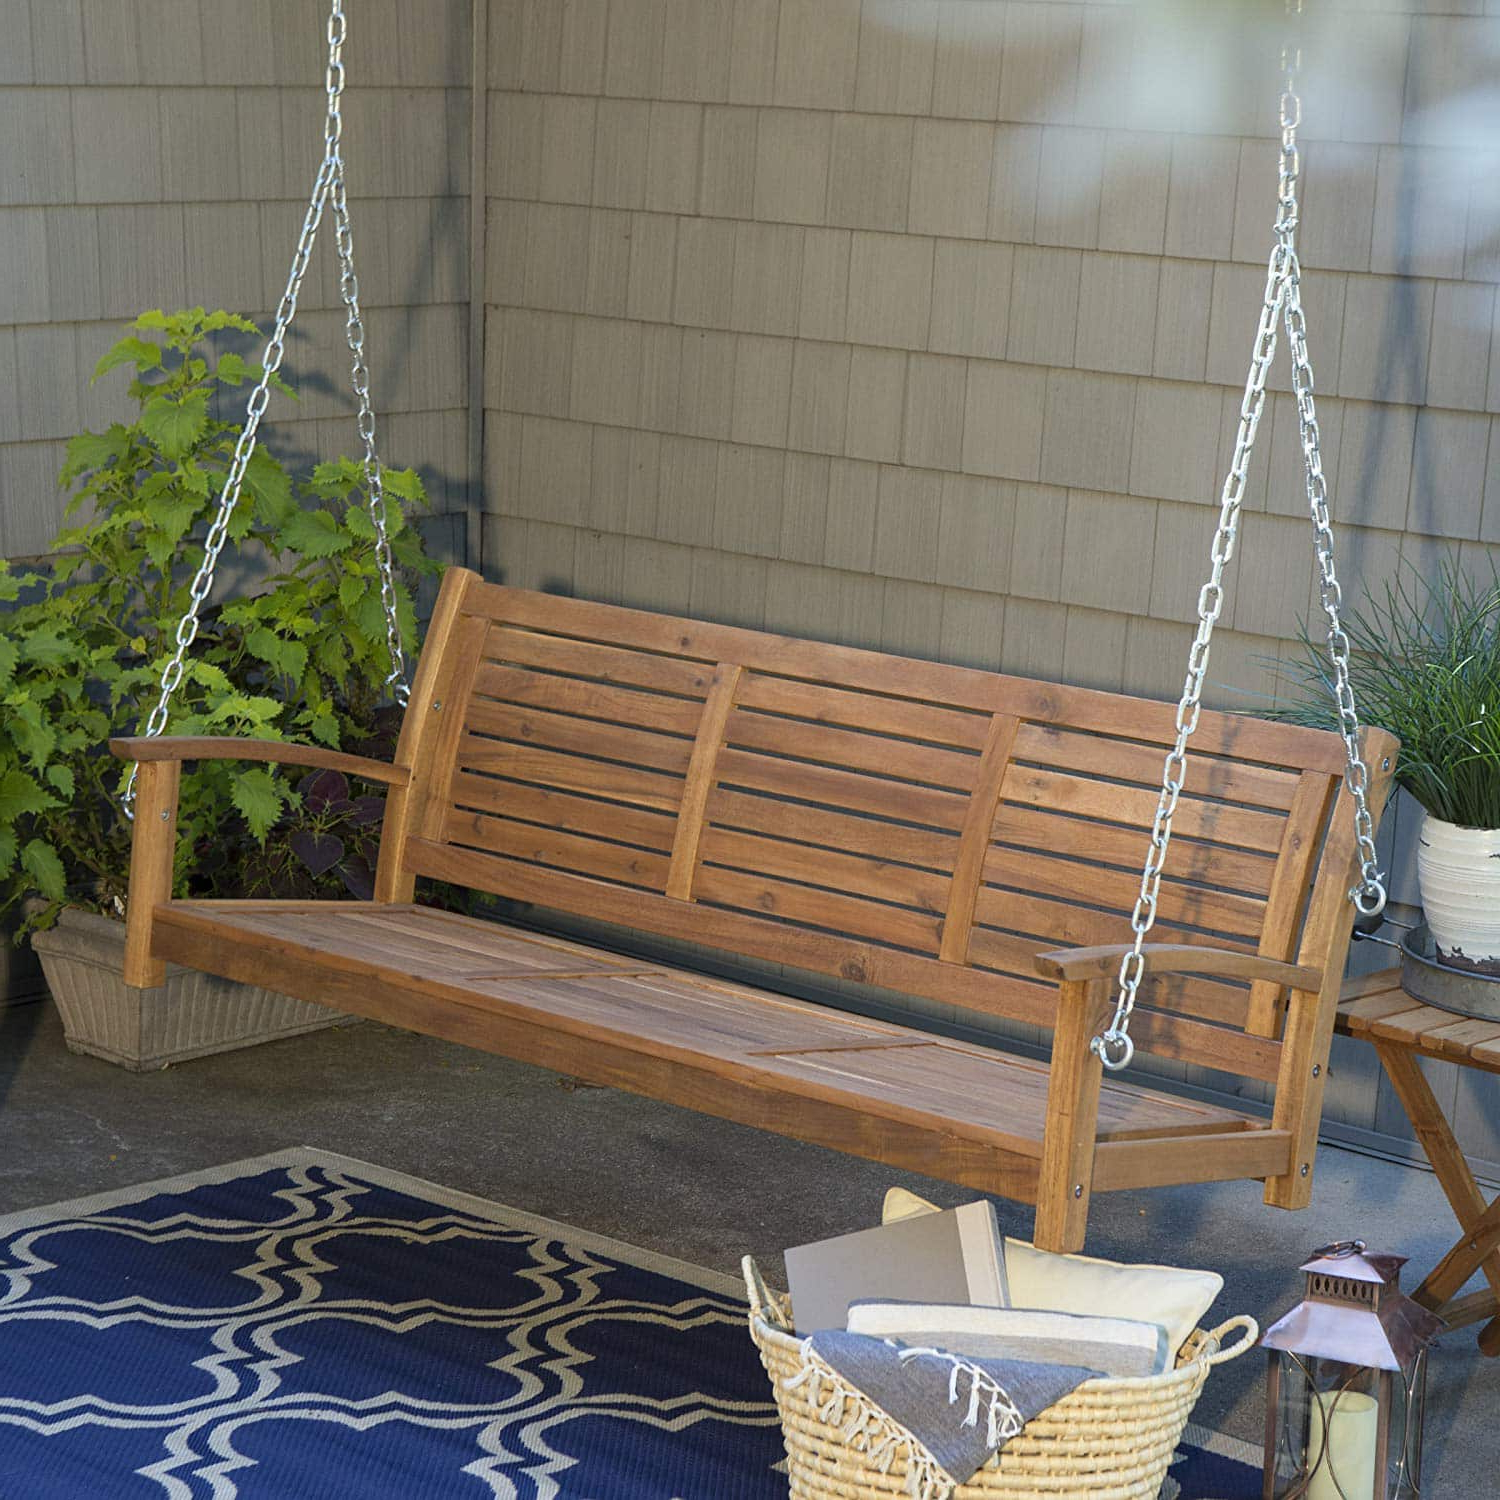 Buyer's Guide Inside Canopy Patio Porch Swings With Pillows And Cup Holders (Gallery 18 of 30)